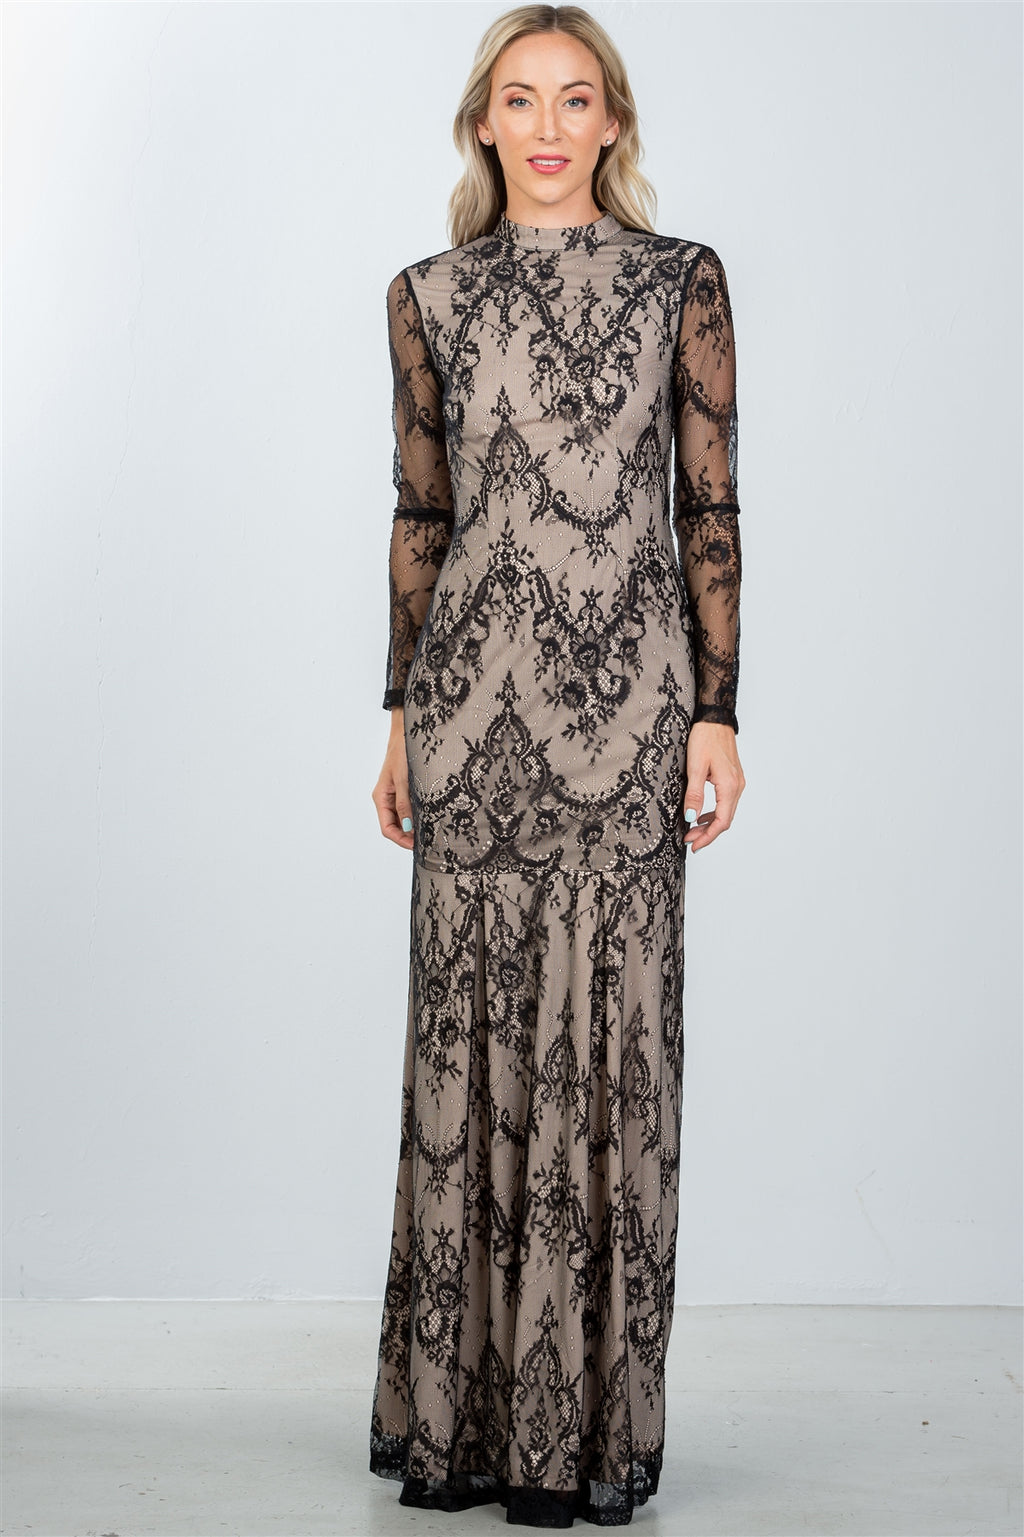 Ladies fashion black lace nude illusion open back maxi dress - Miranda's Paparazzi Style